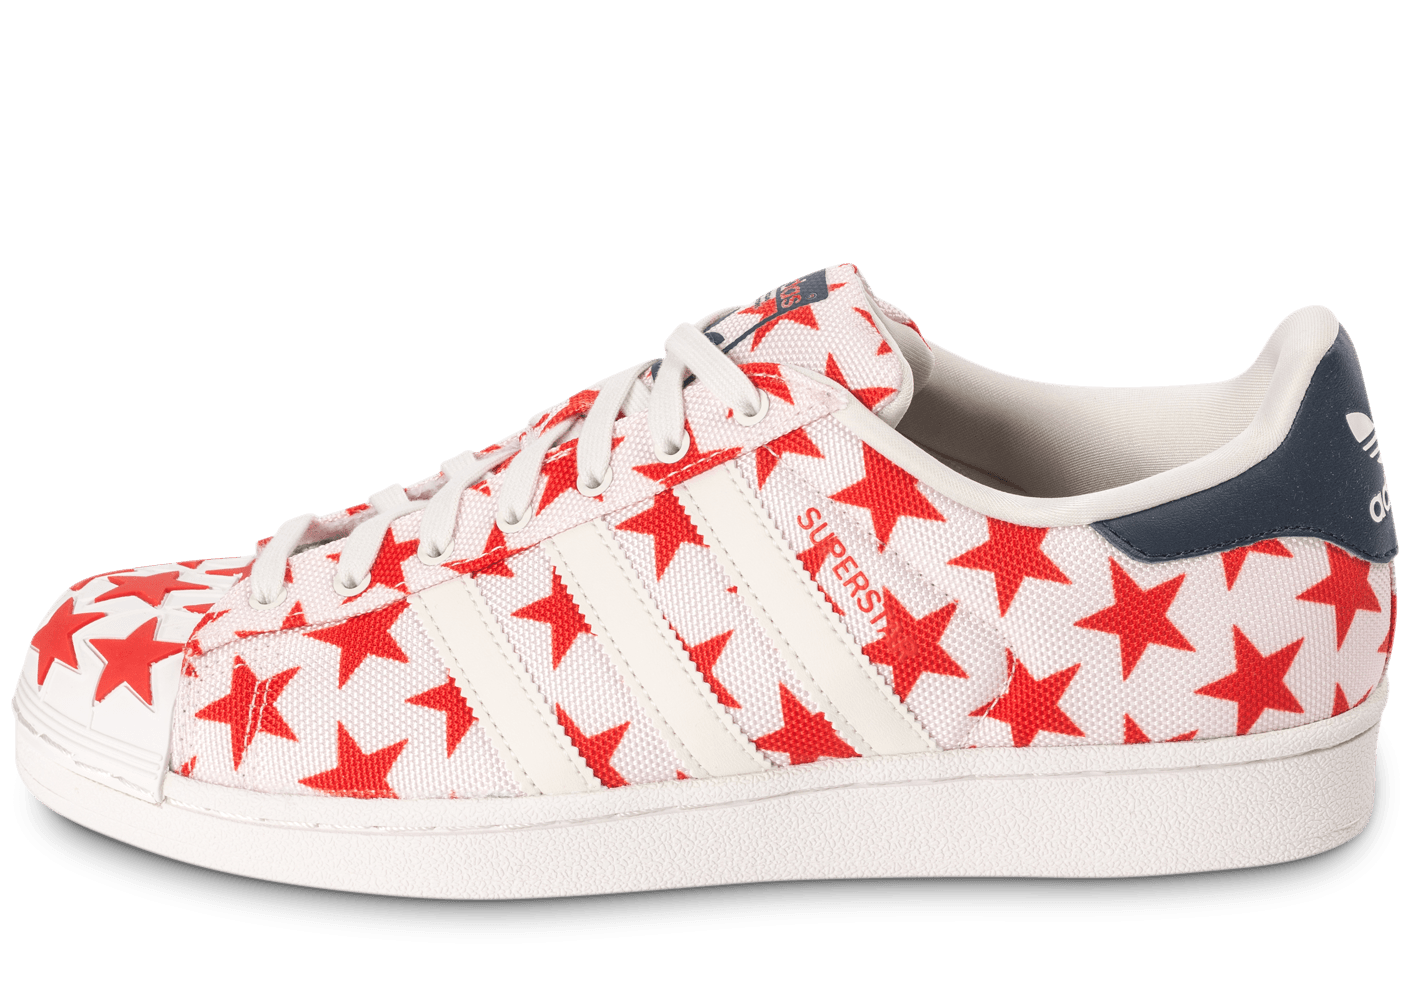 3389c3876433 adidas Superstar Shell Toe Star Pack blanche et rouge - Chaussures Baskets  homme - Chausport